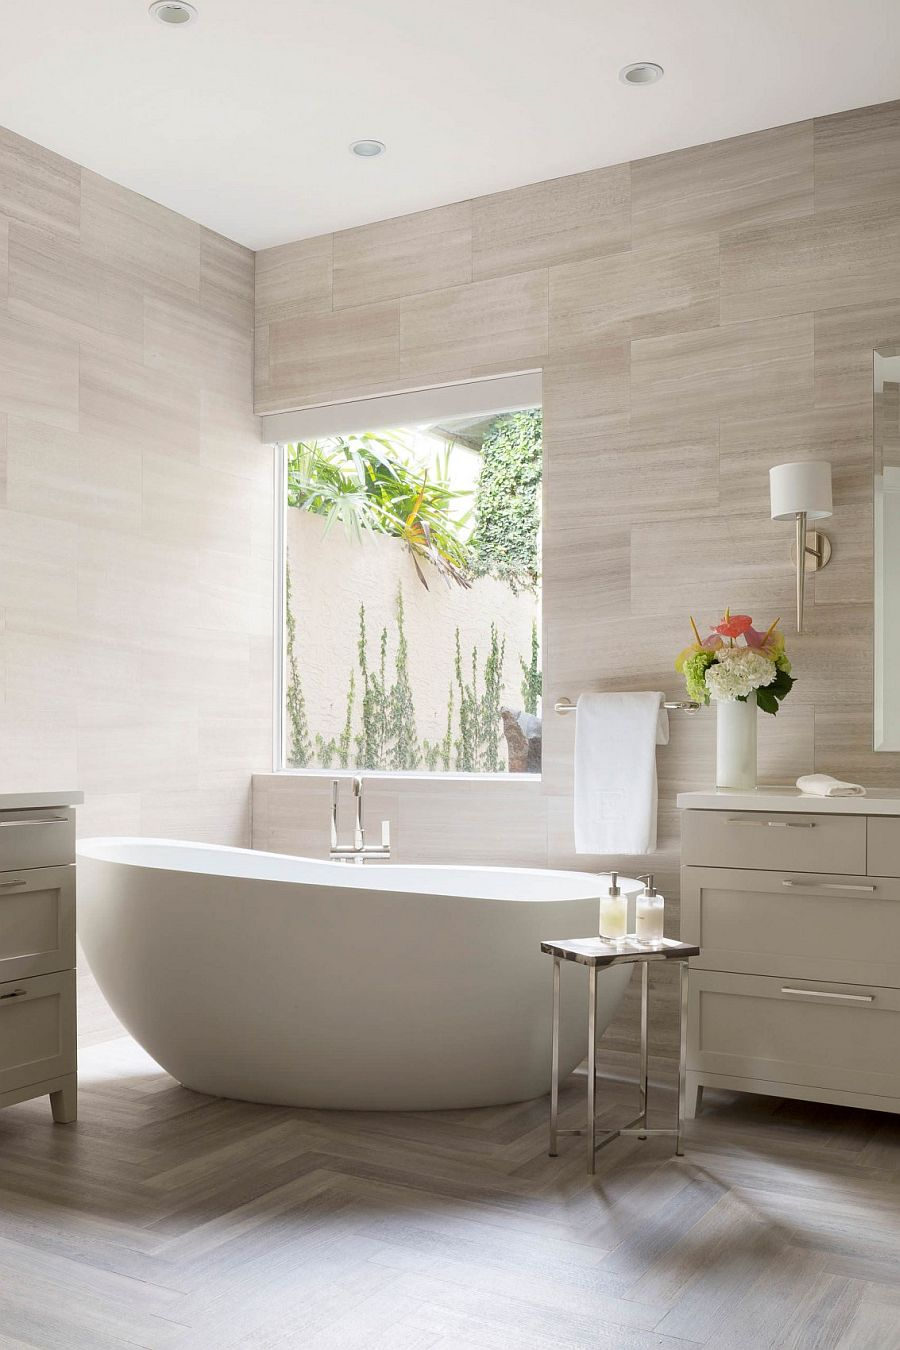 Wall tiles add texture to the serene, contemporary bathroom